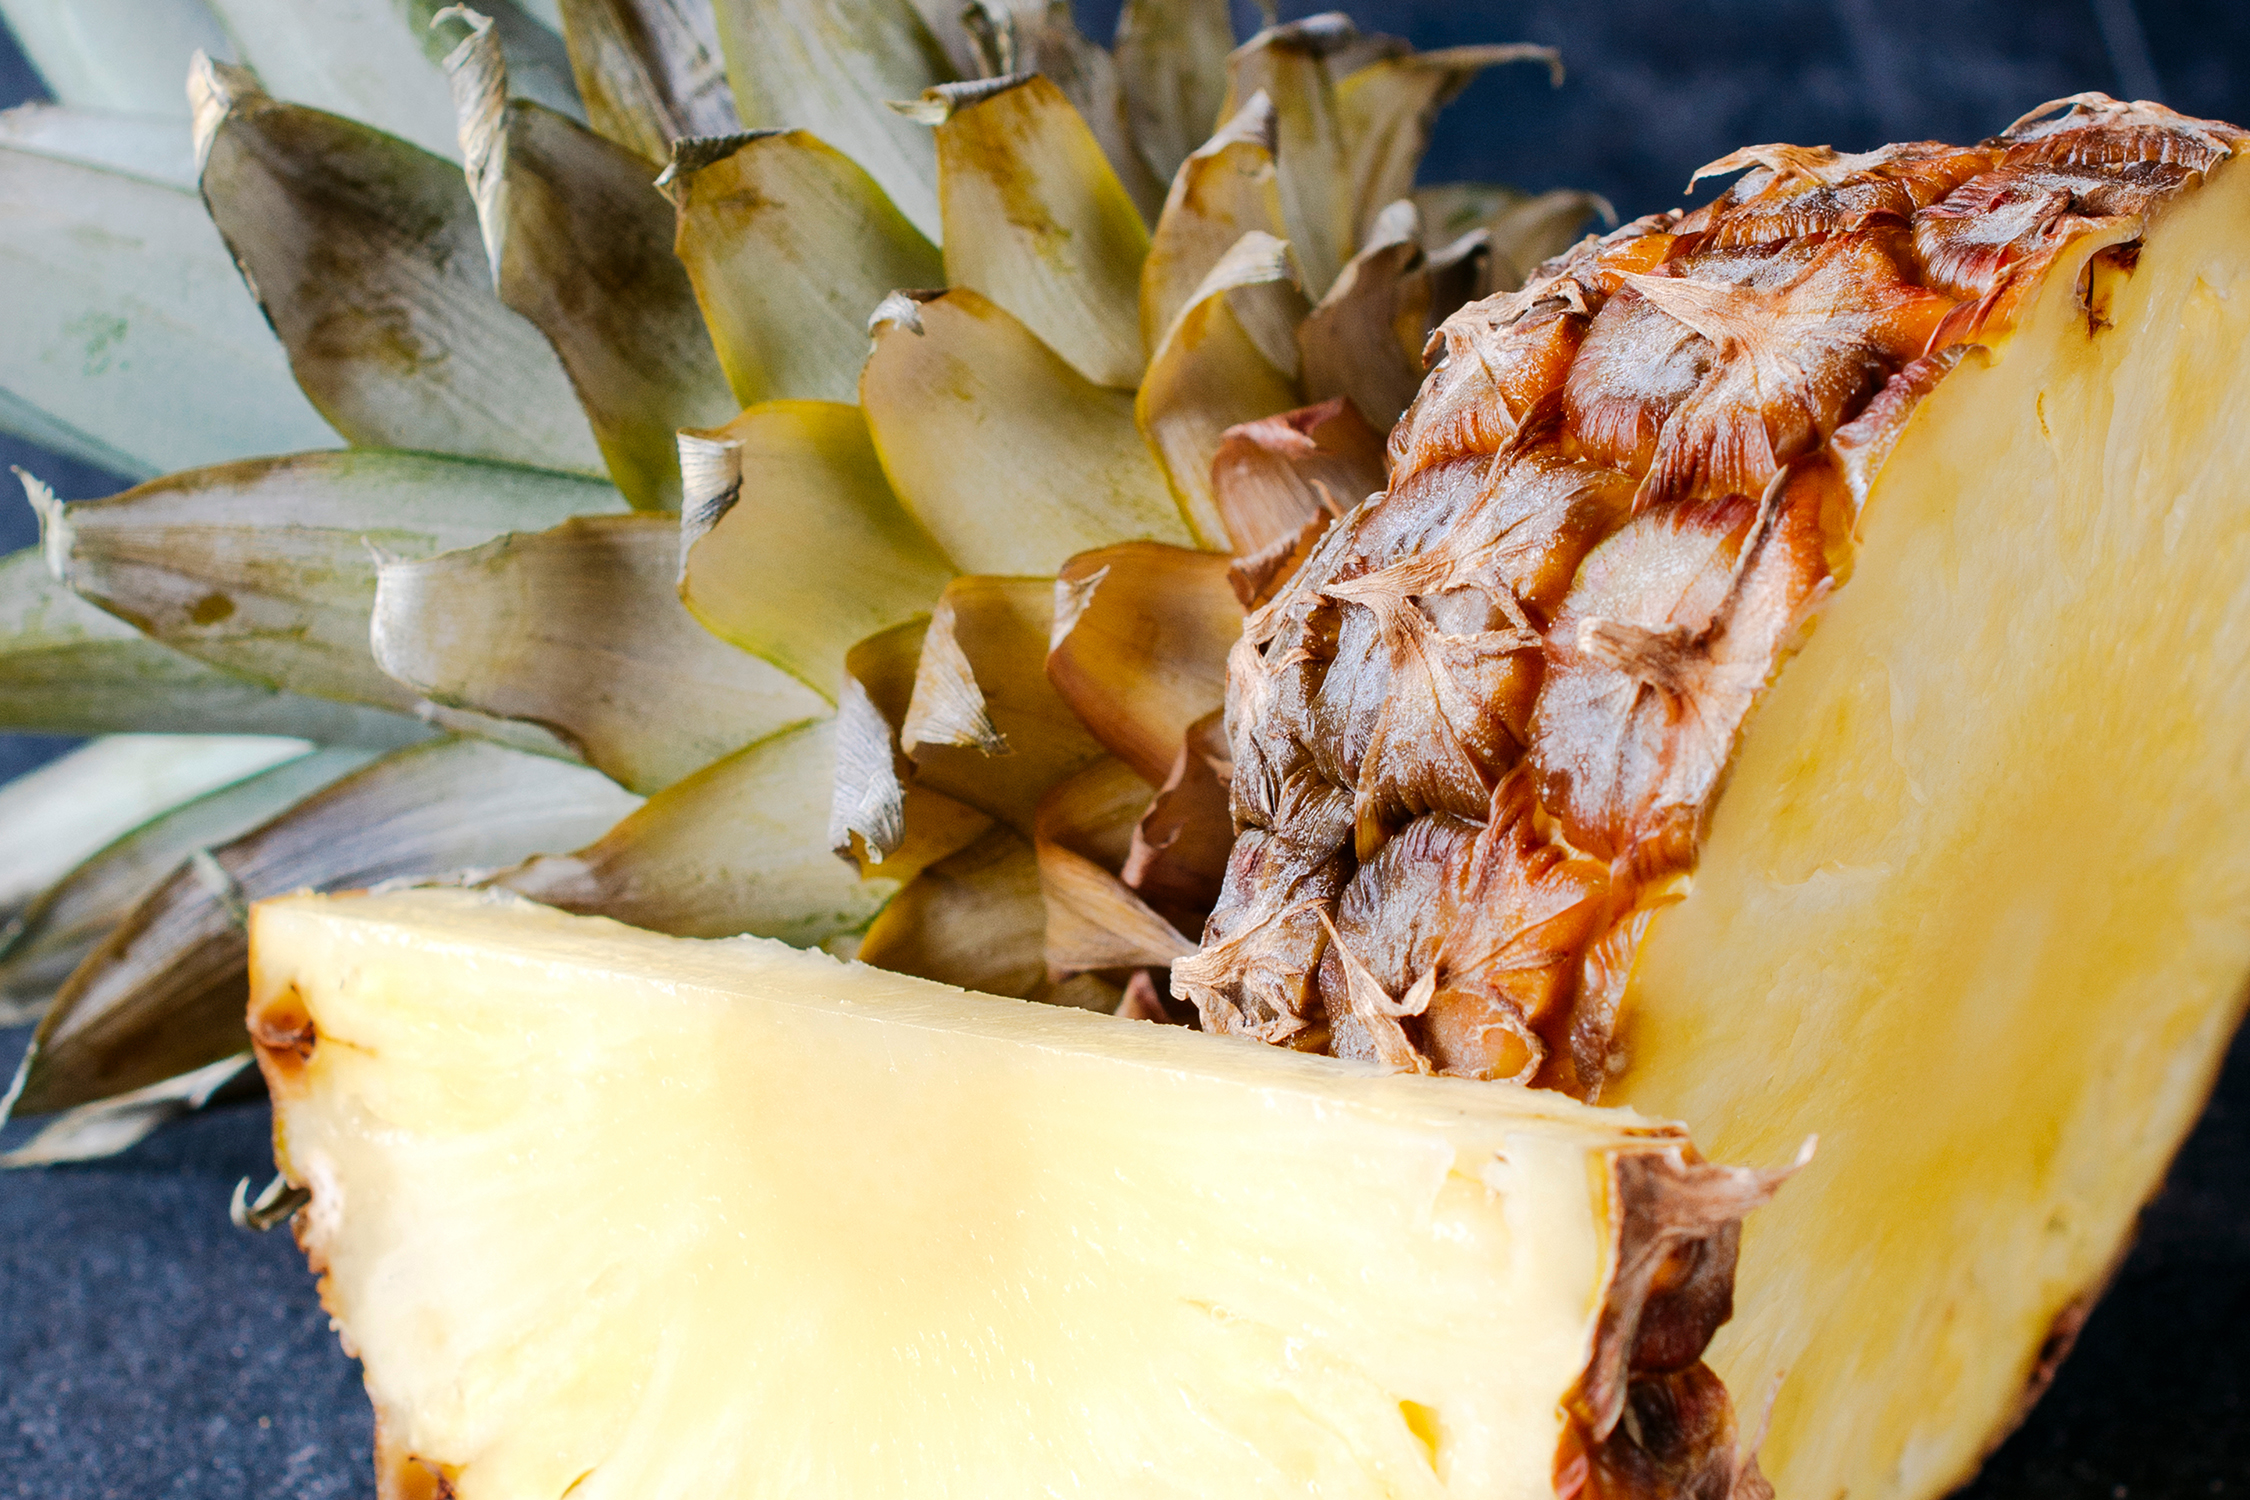 Pineapples - (10-12 mos.)Not a citrus fruit, pineapples are a good way to get much needed vitamin C over the winter. Since pineapple is high in citric acid, baby should be monitored for diaper rash when introducing this tropical treat. Consider pineapples when making kabobs to add a sweet flavor profile to any combination. Have your kids assist in defining colors, tastes and textures of ingredients - i.e. fibrous, sweet and tart - building vocabulary while building kabobs.